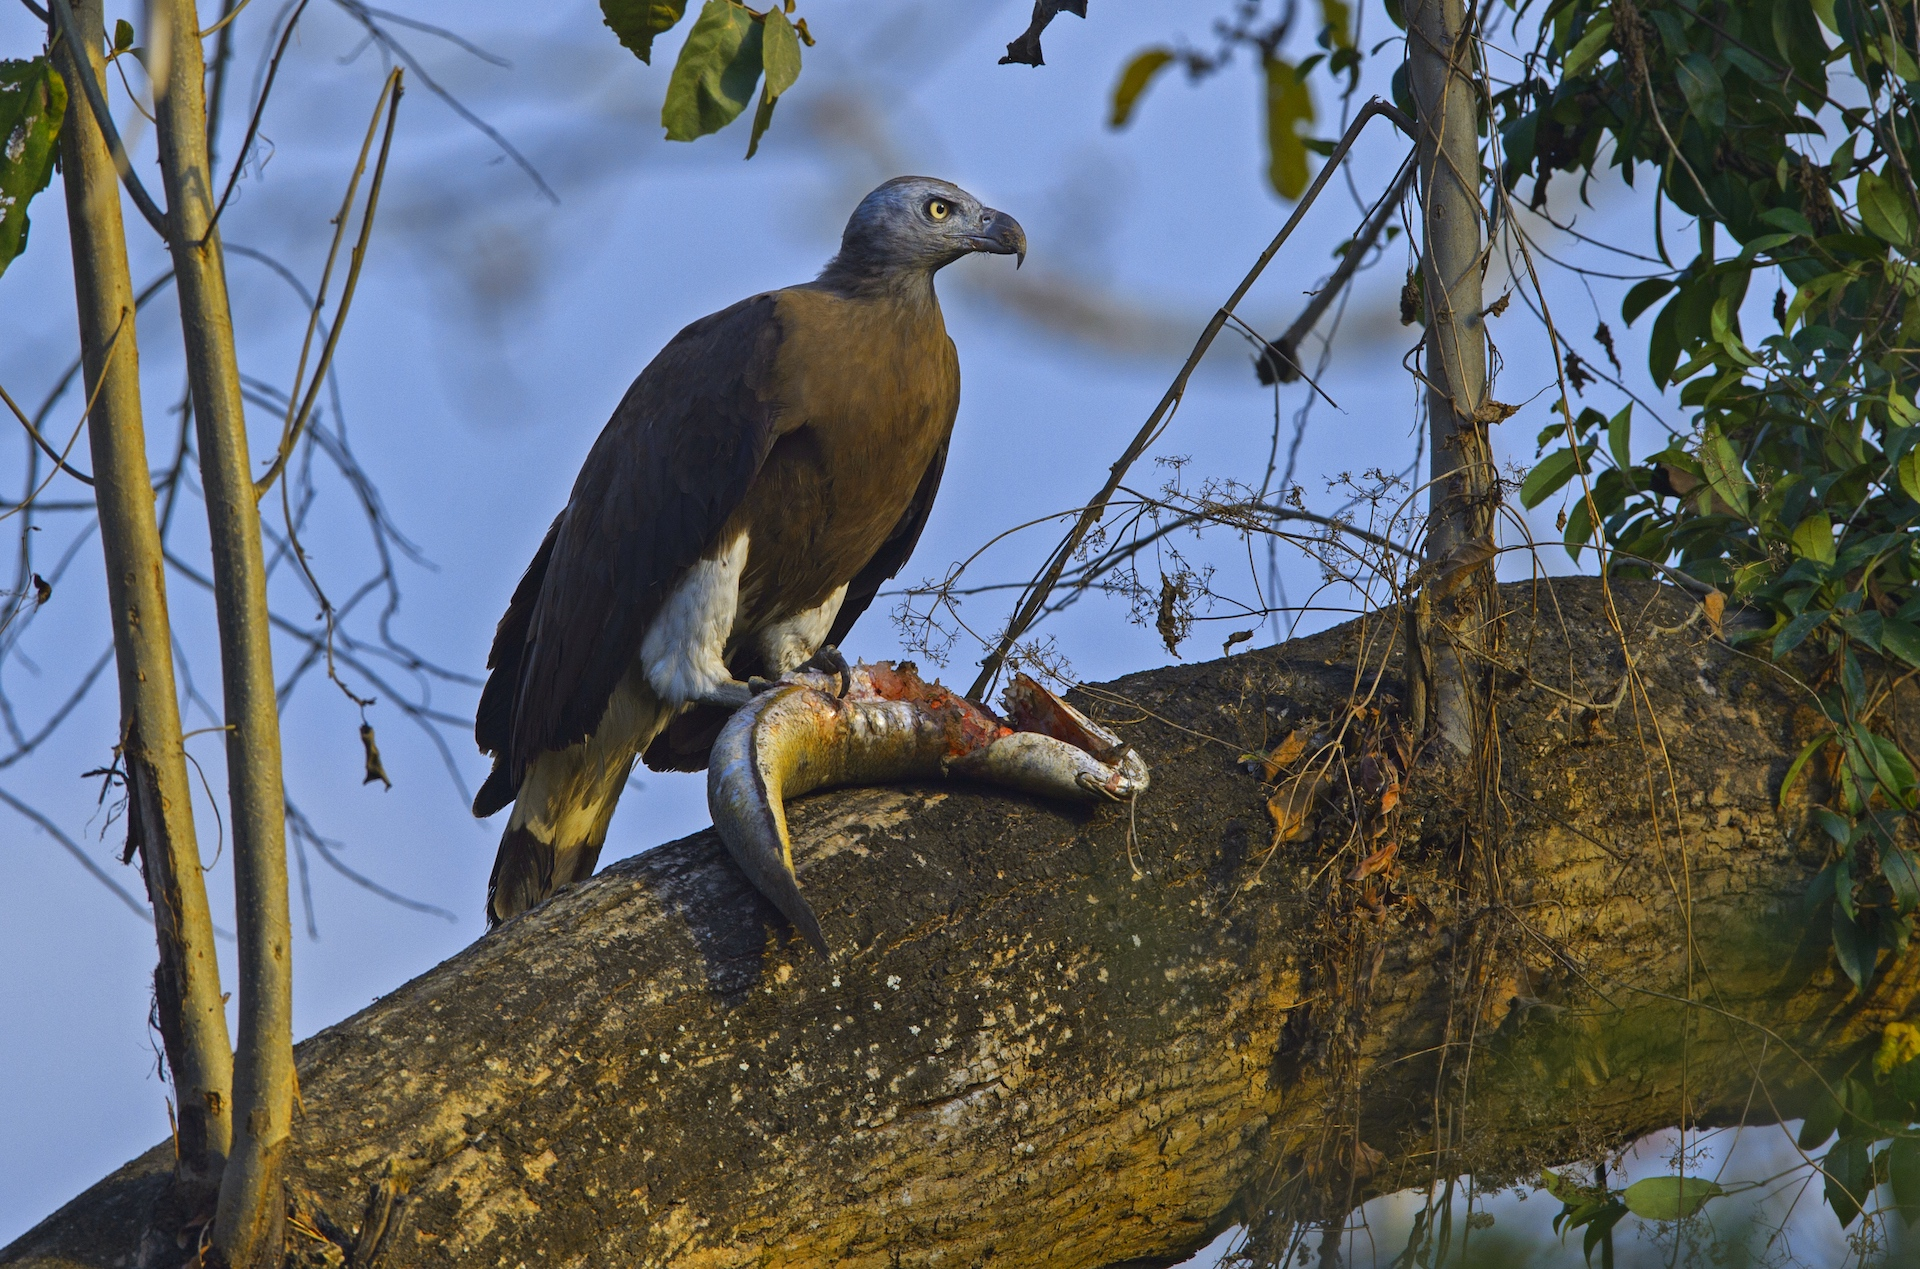 Once a fish is caught, the eagle will carry it to a nearby tree or the banks of the waterbody to devour it. Photo: Dhritiman Mukherjee